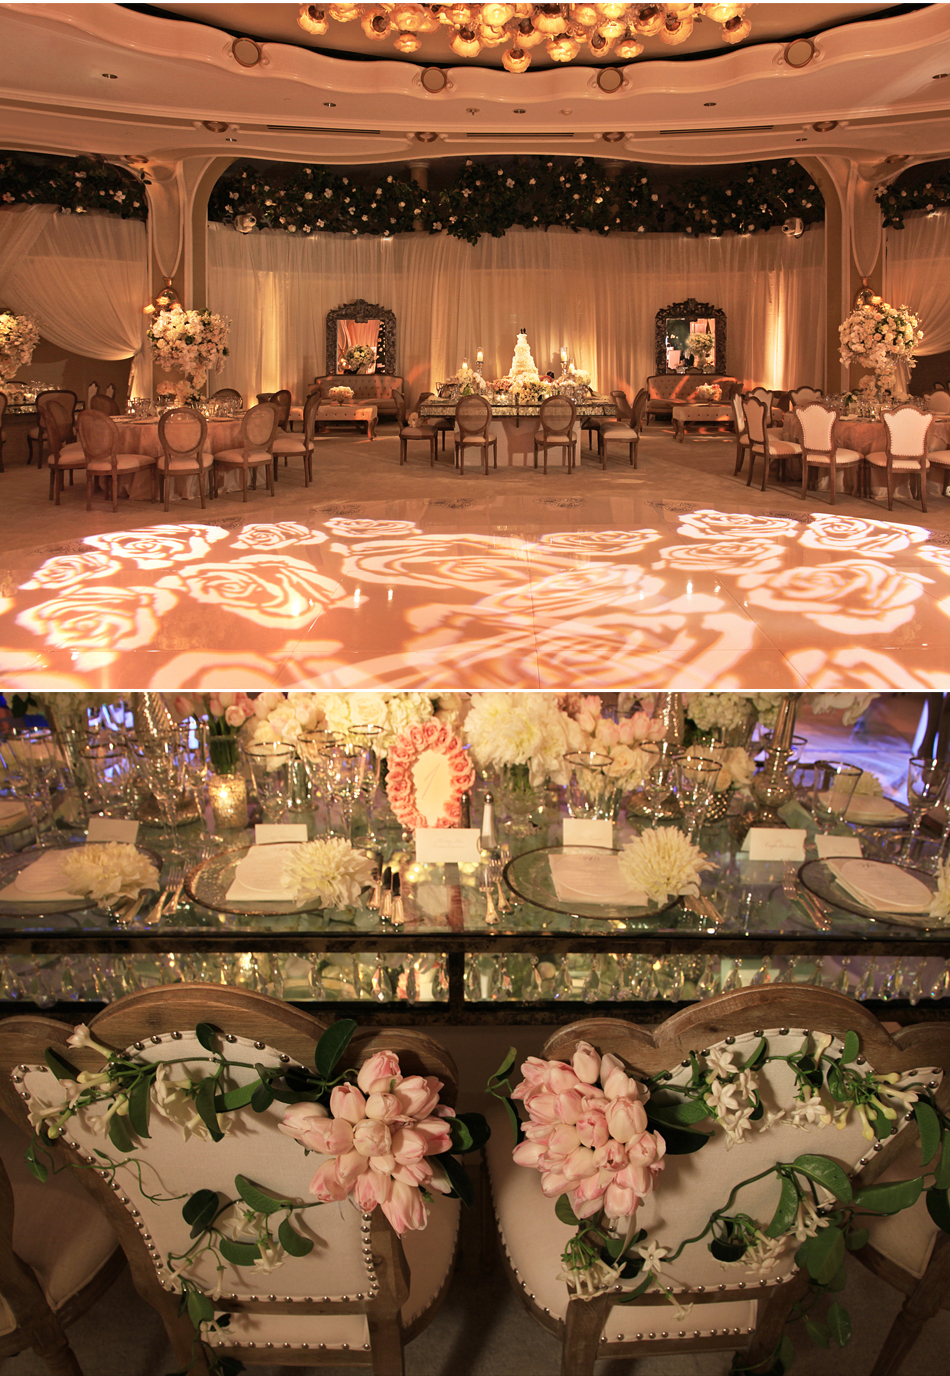 internationaleventcompany.com | International Event Company Los Angeles Wedding Planner and Designer | Weddings at The Beverly Hills Hotel | Luxury Event Planners in Southern California _ (3).jpg